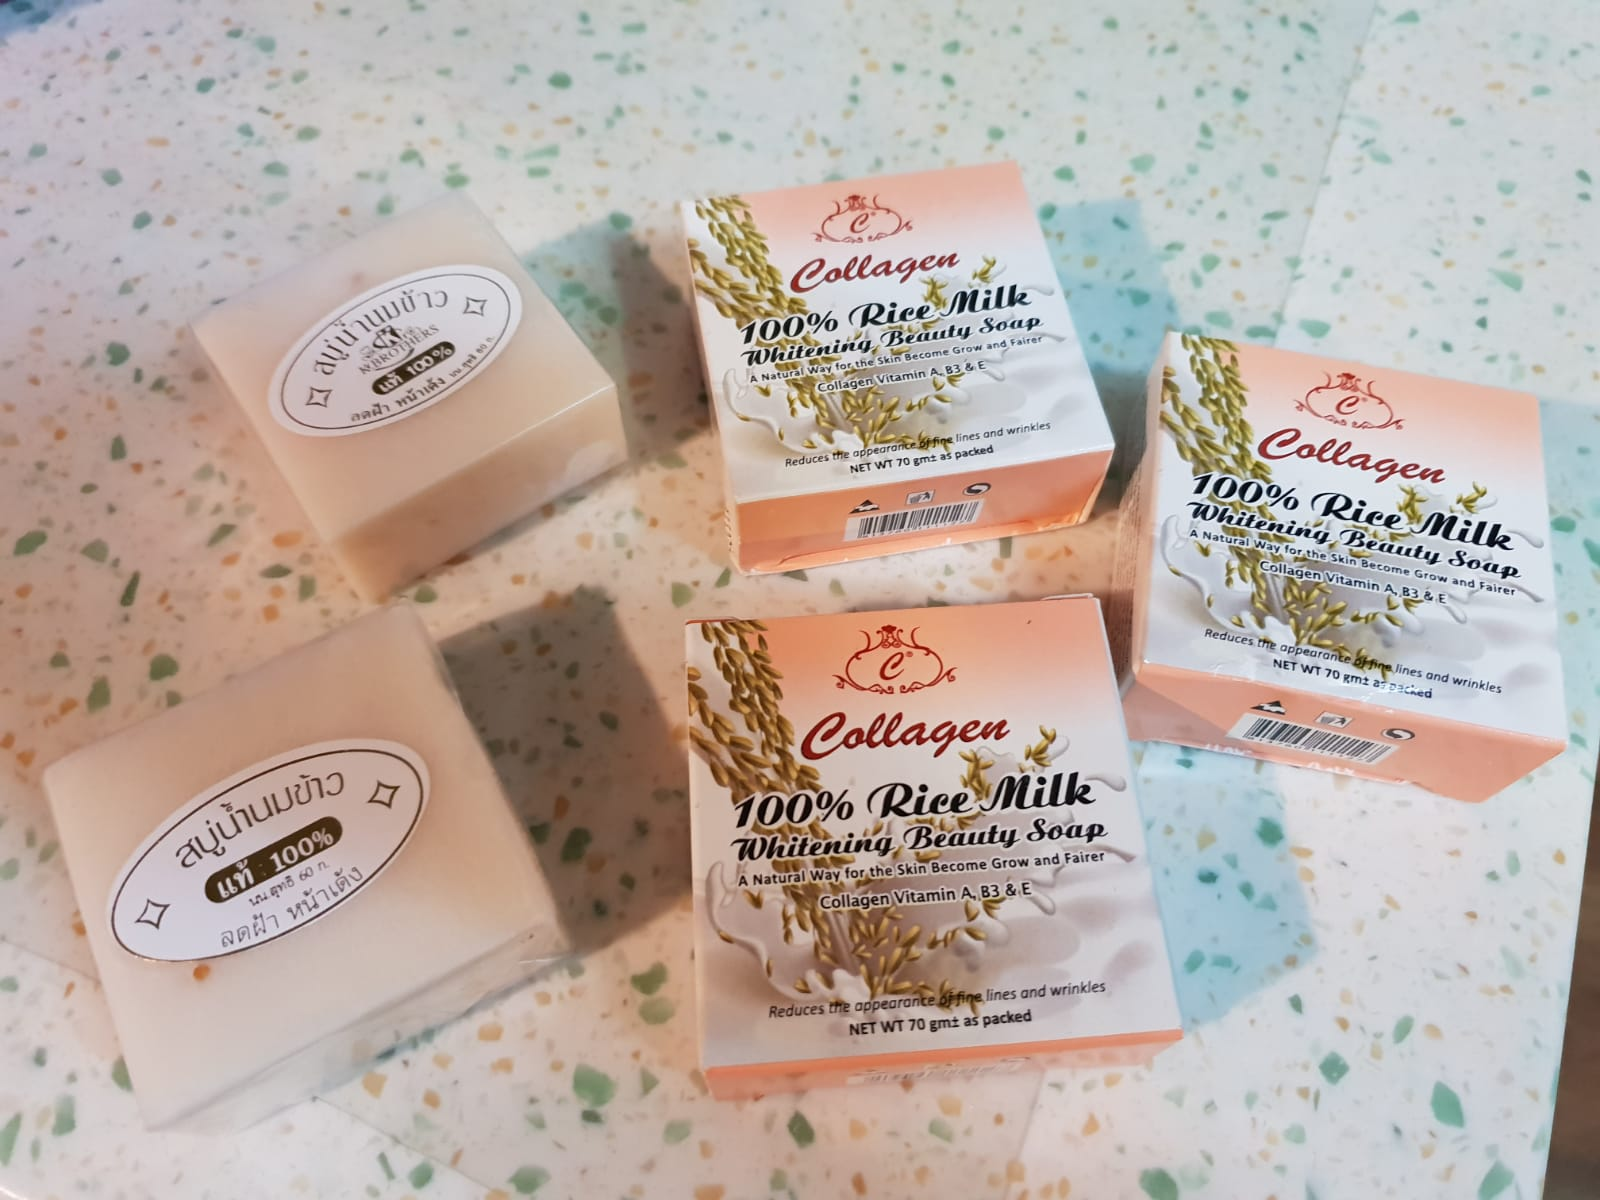 100% Rice Milk Whitening Beauty Soap with Collagen